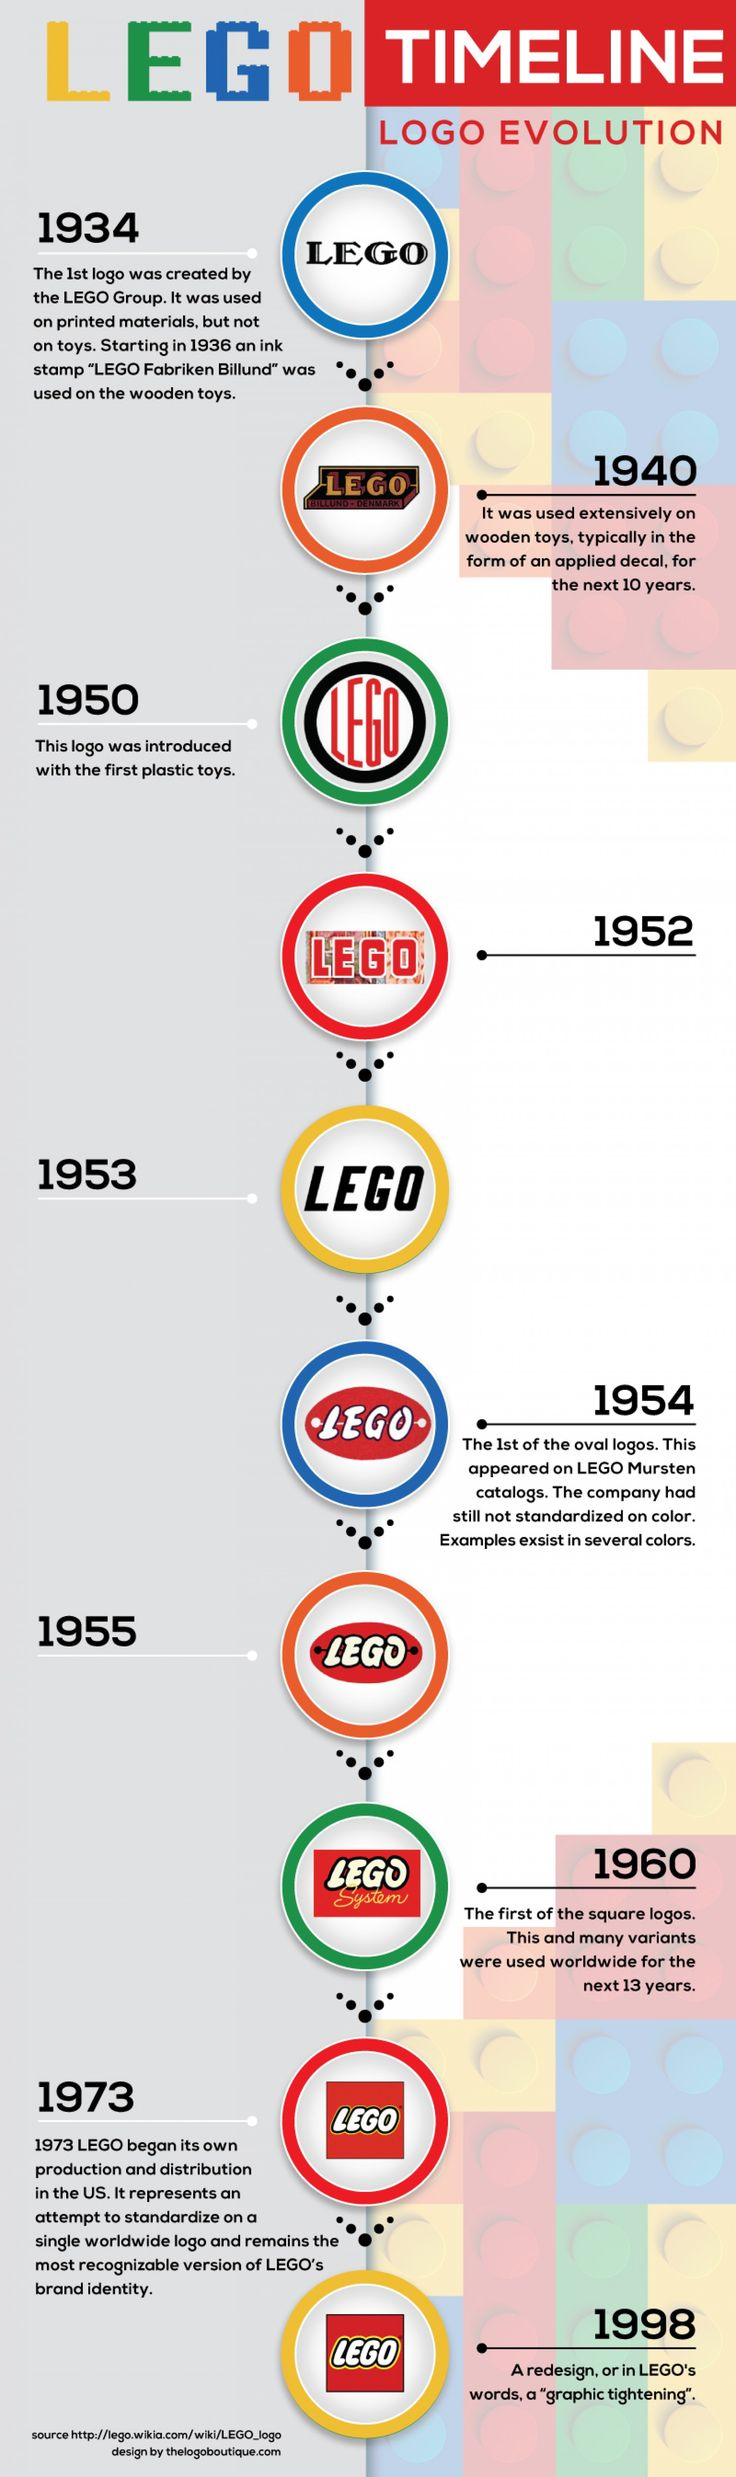 the logo boutique put together this amazing #infographic about the #lego logo evolution